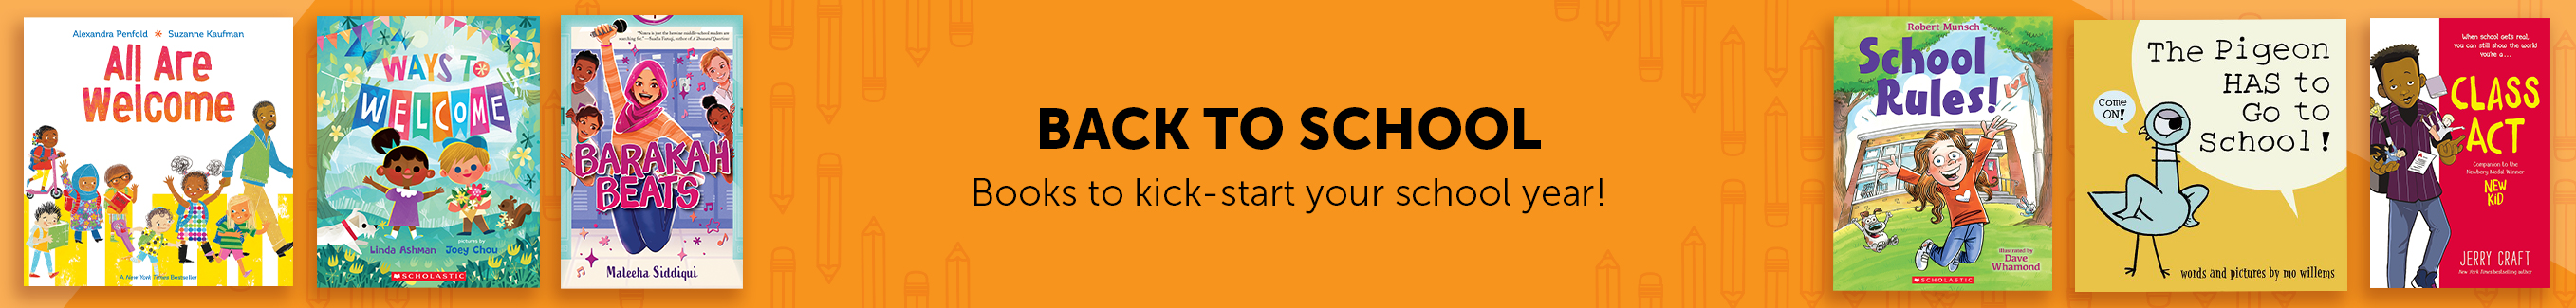 Back to School. Books to kick-start your school year!